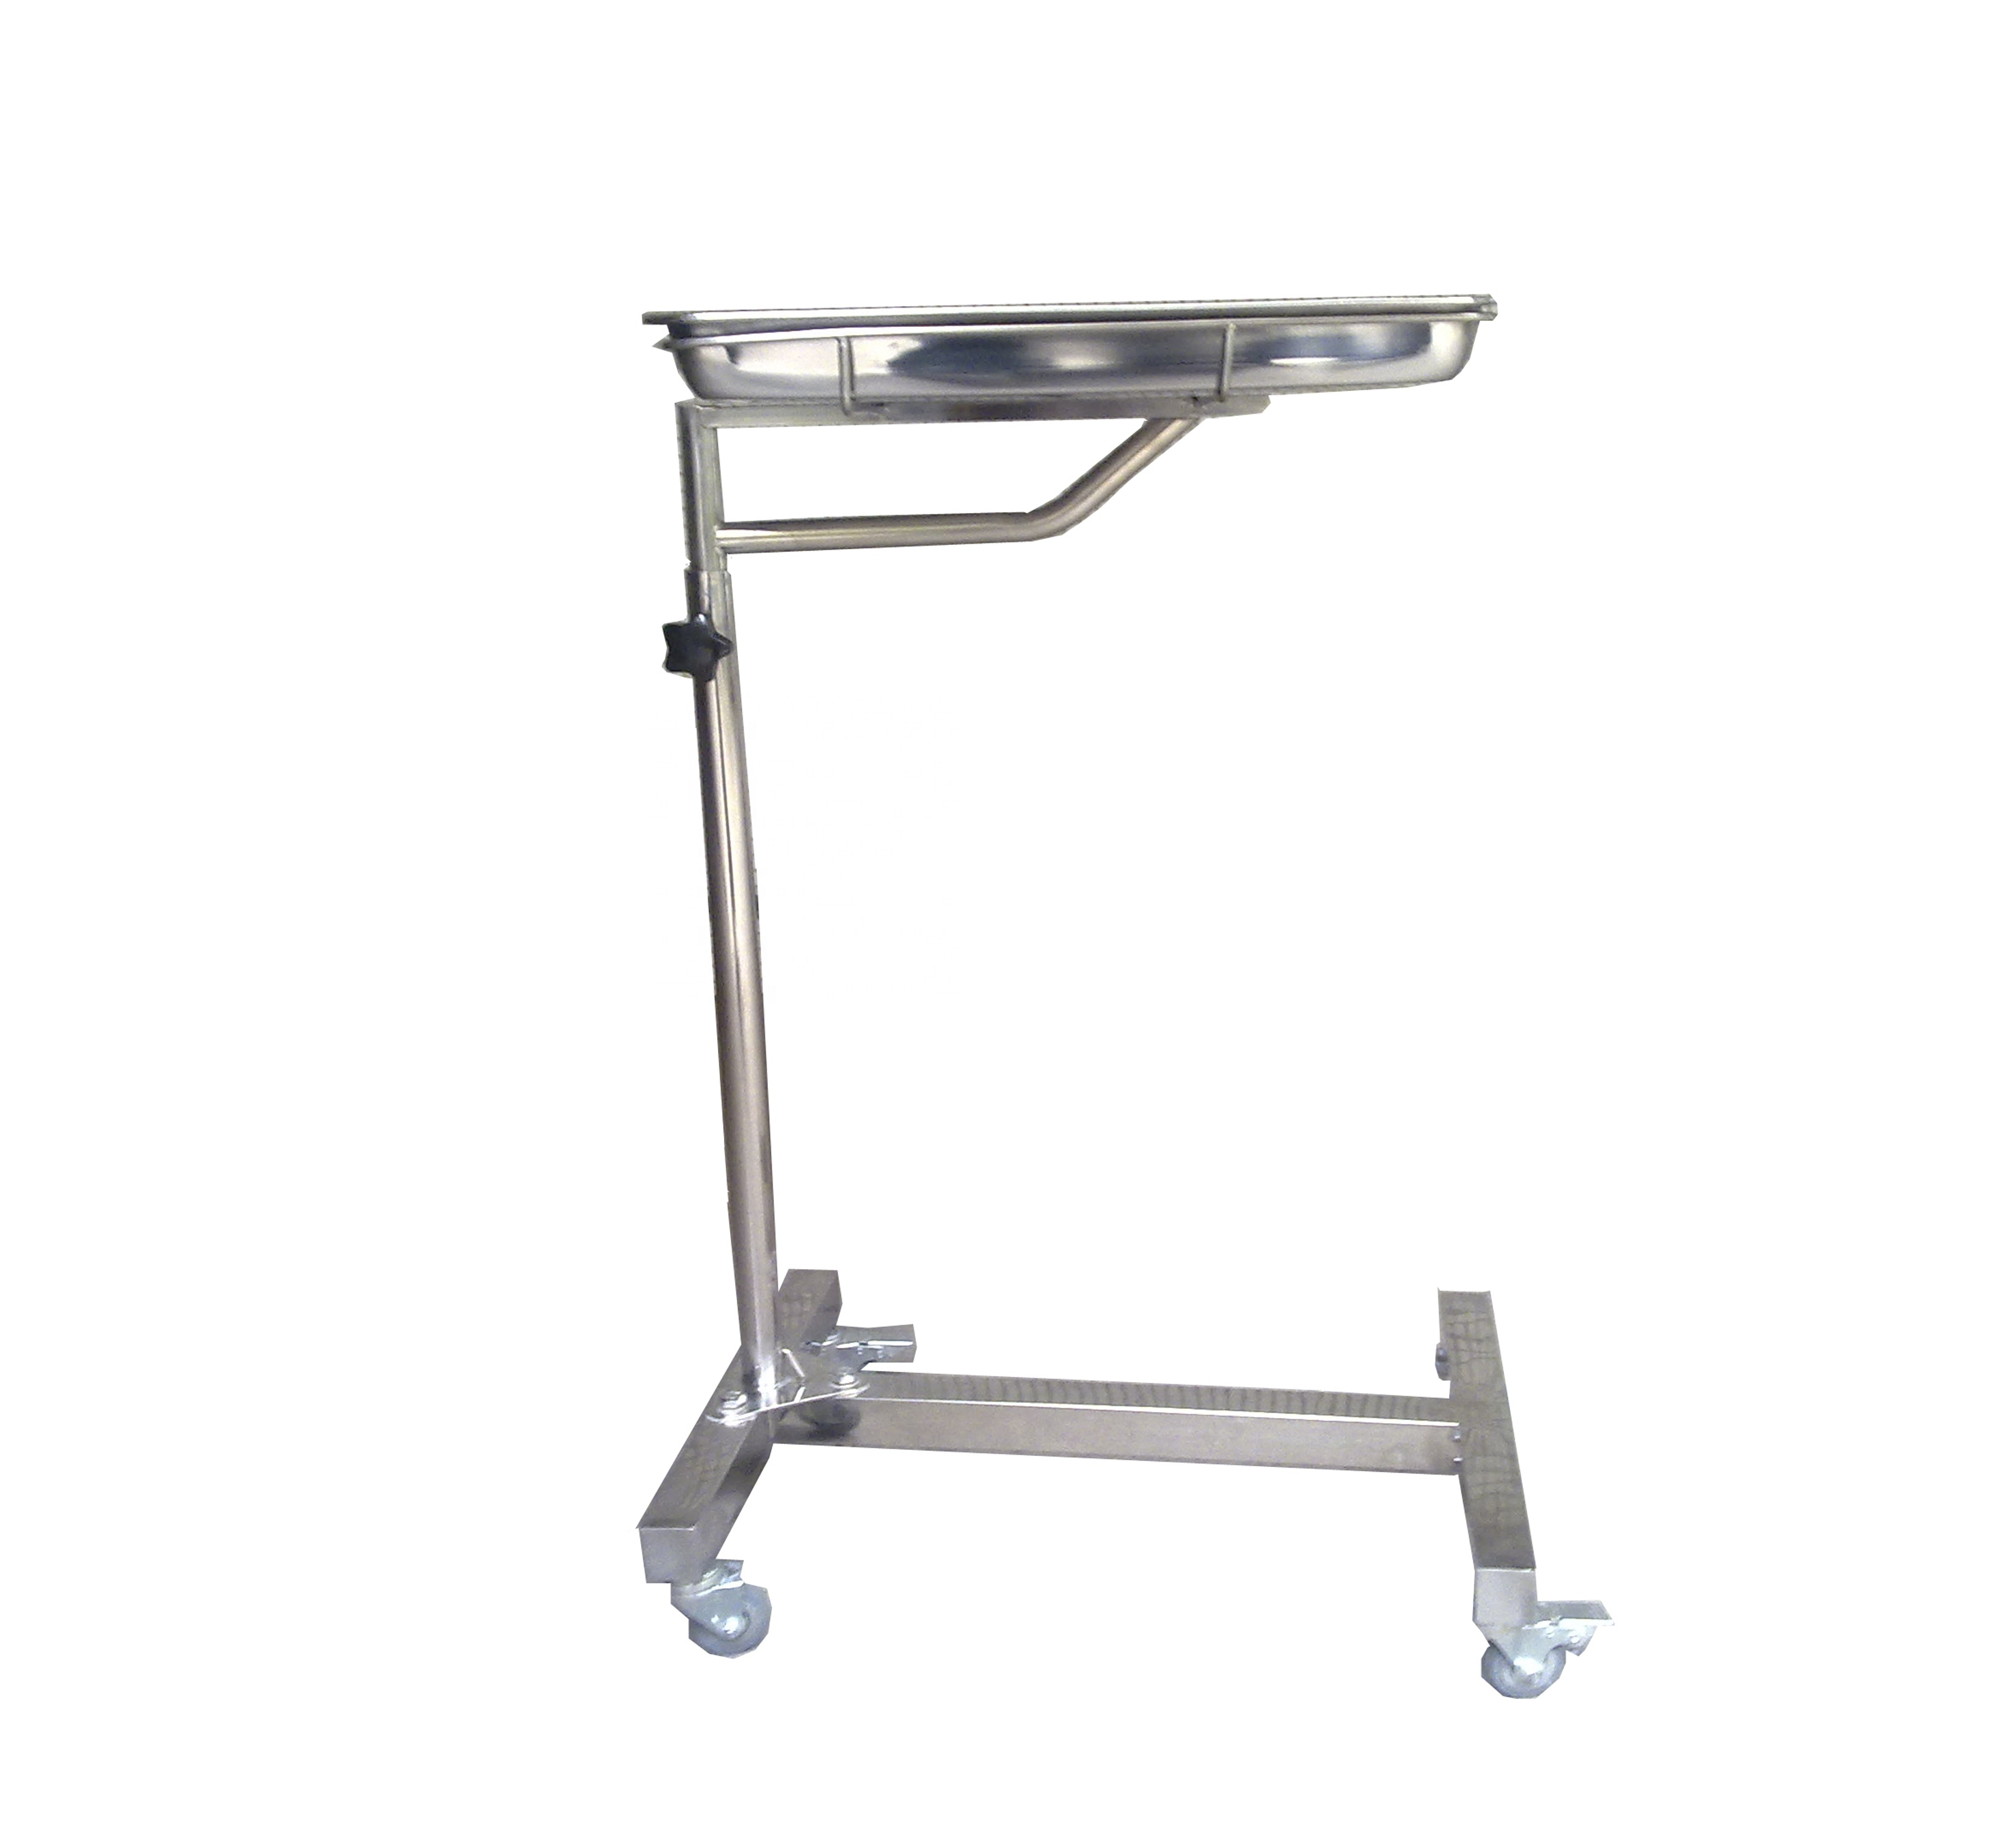 Cy D152 Used Stainless Steel Medical Mayo Instrument Tray Table For Product On